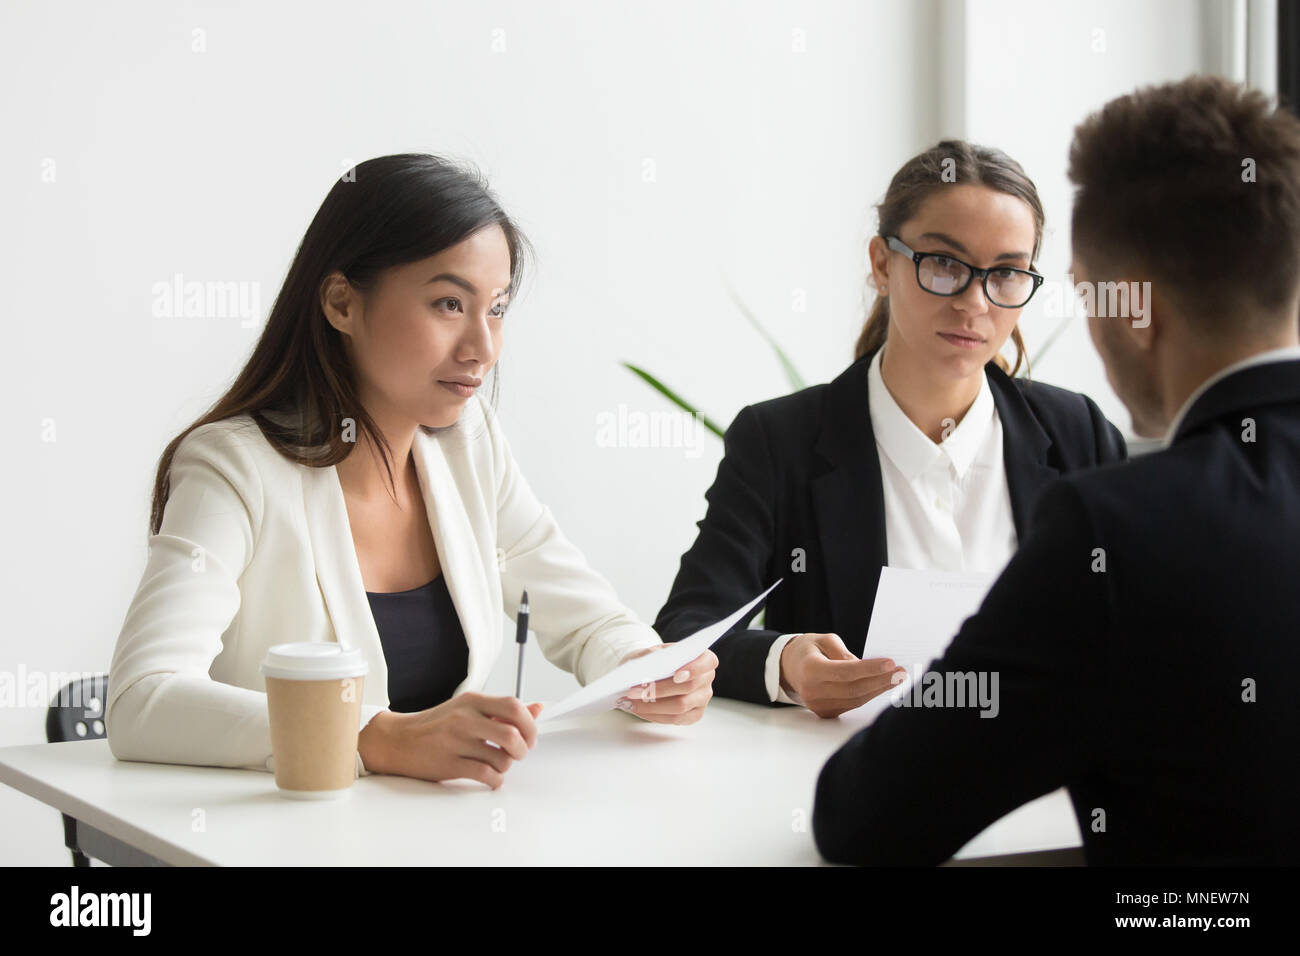 Colleagues discussing business plan in office - Stock Image